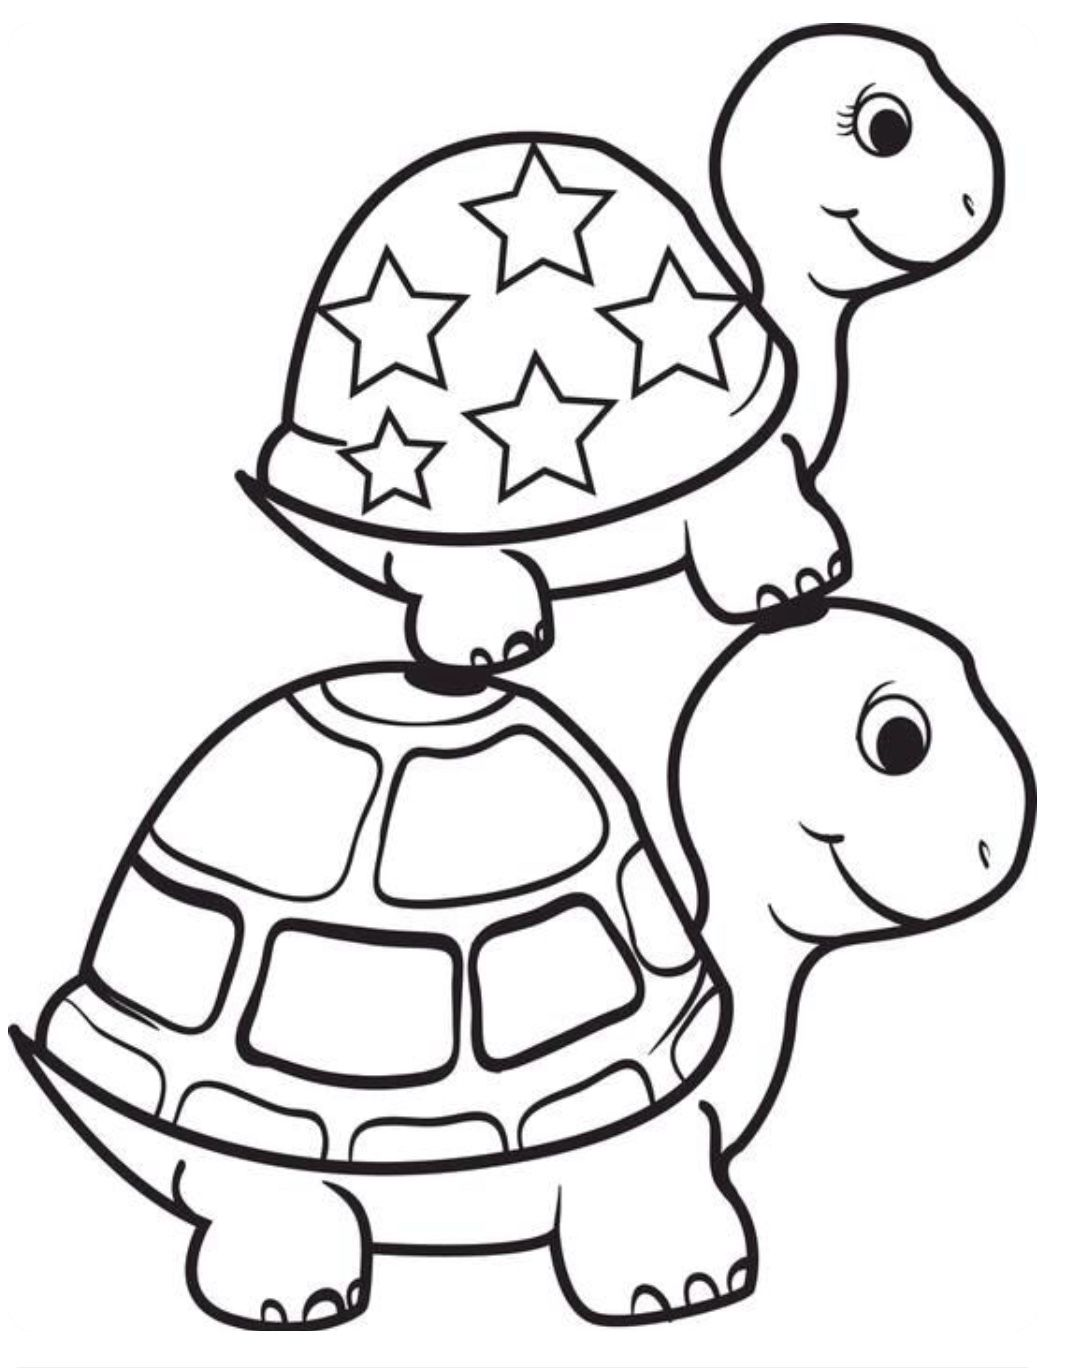 Pin By Lynn O Hara On Young Ones Turtle Coloring Pages Animal Coloring Pages Frog Coloring Pages